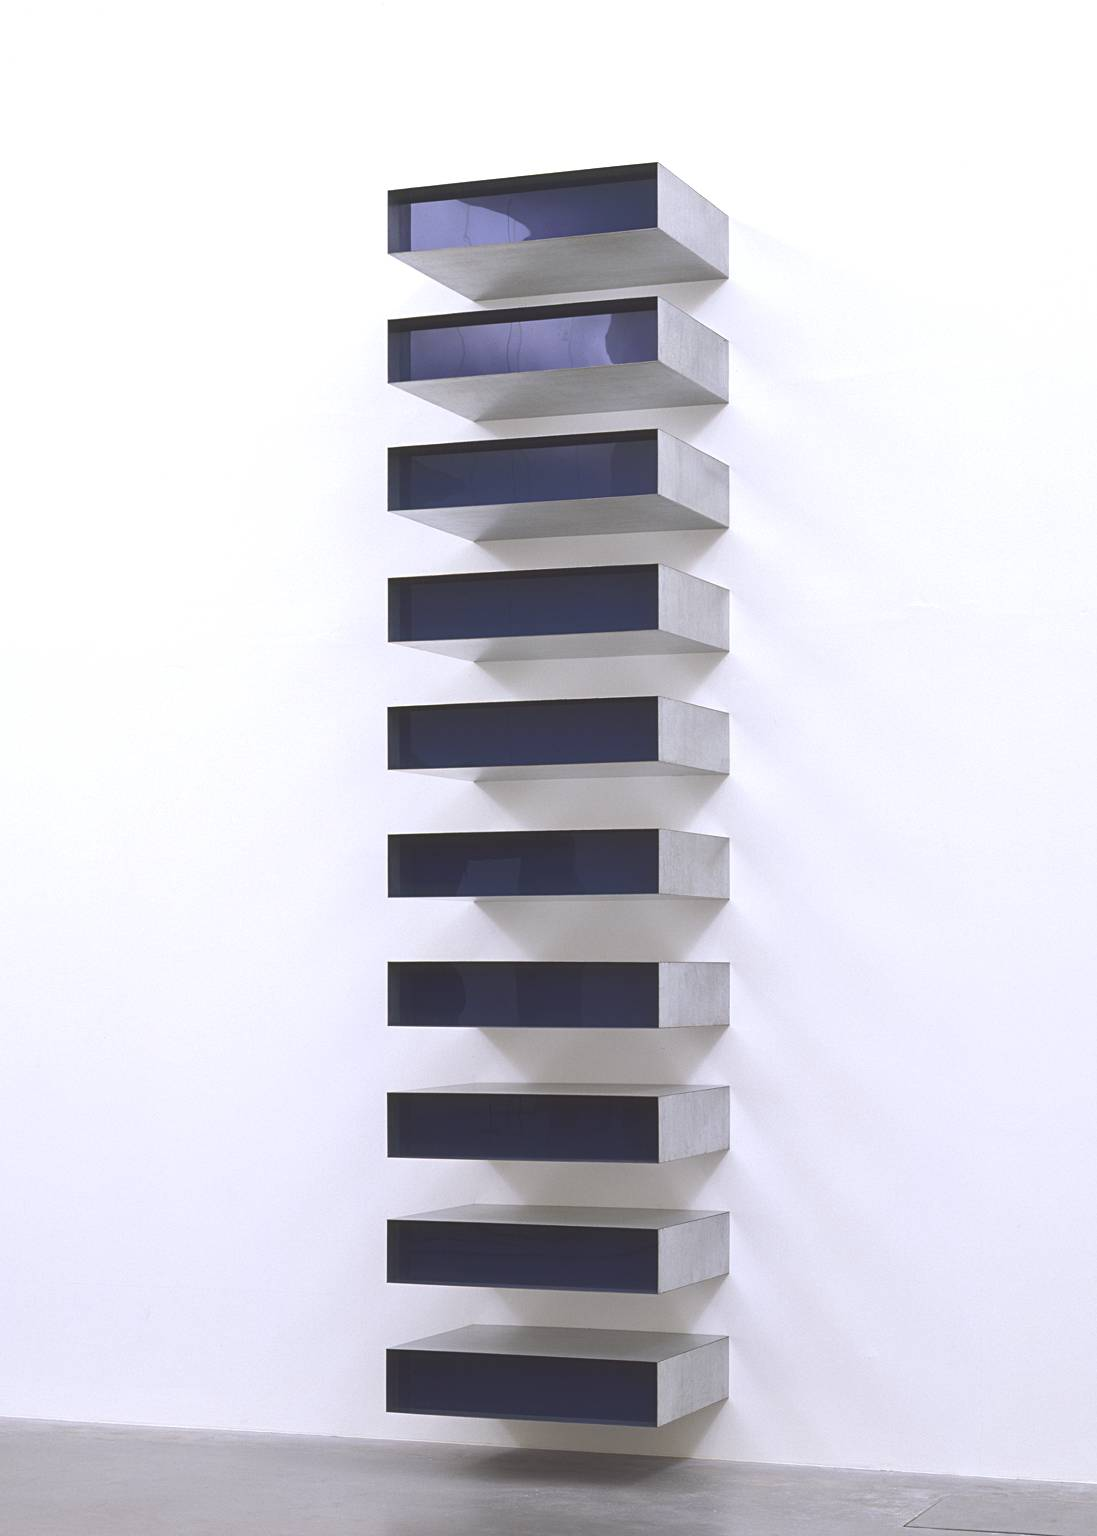 Untitled 1980 by Donald Judd 1928-1994